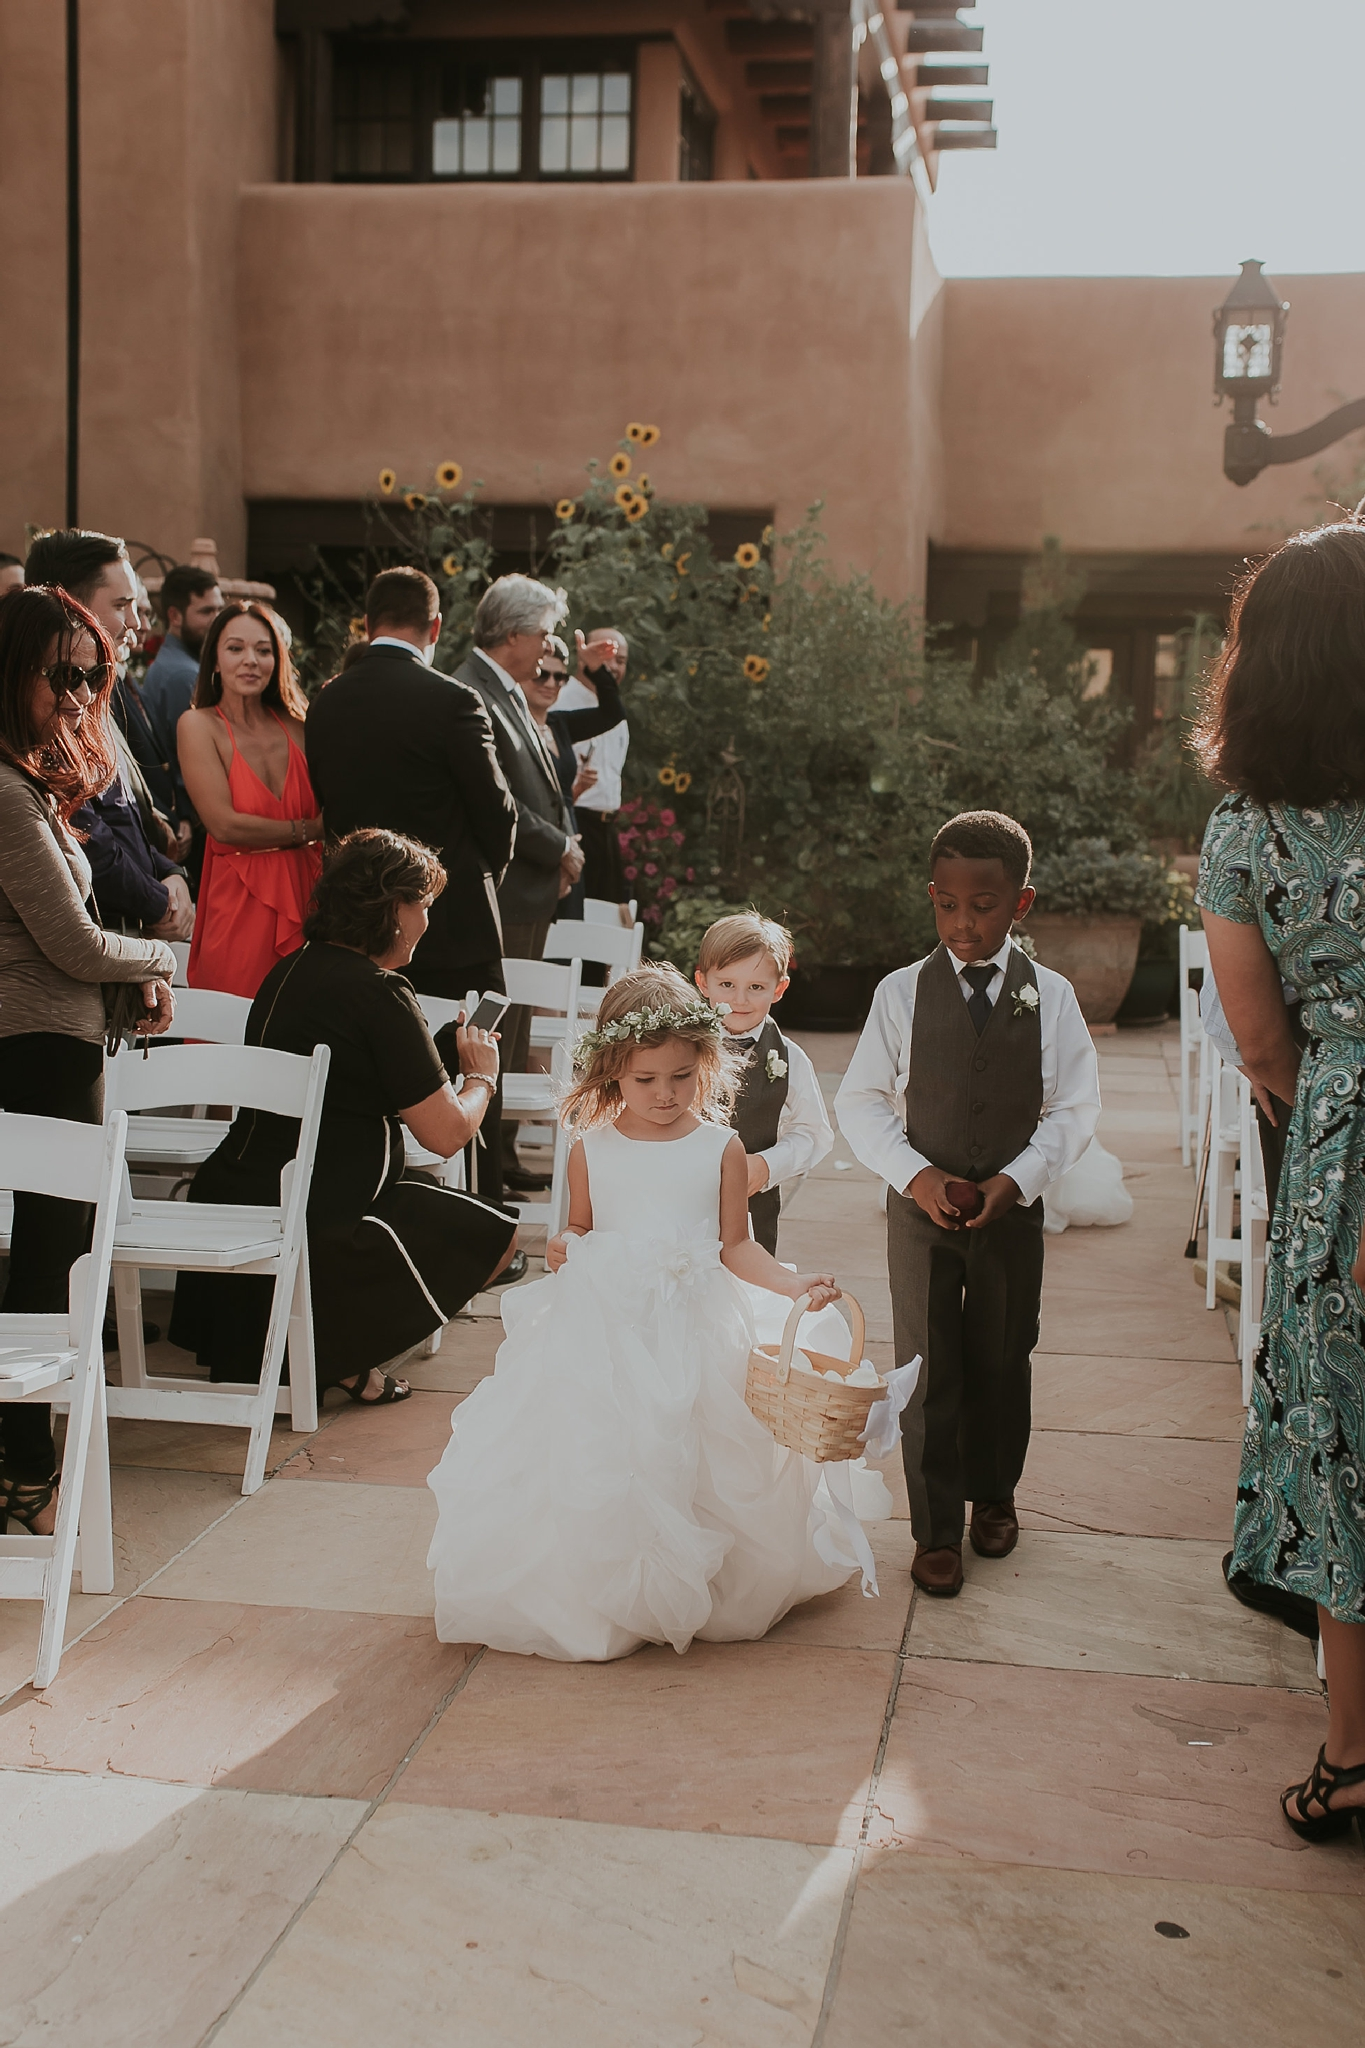 Alicia+lucia+photography+-+albuquerque+wedding+photographer+-+santa+fe+wedding+photography+-+new+mexico+wedding+photographer+-+new+mexico+wedding+-+flower+girl+-+wedding+flower+girl_0074.jpg